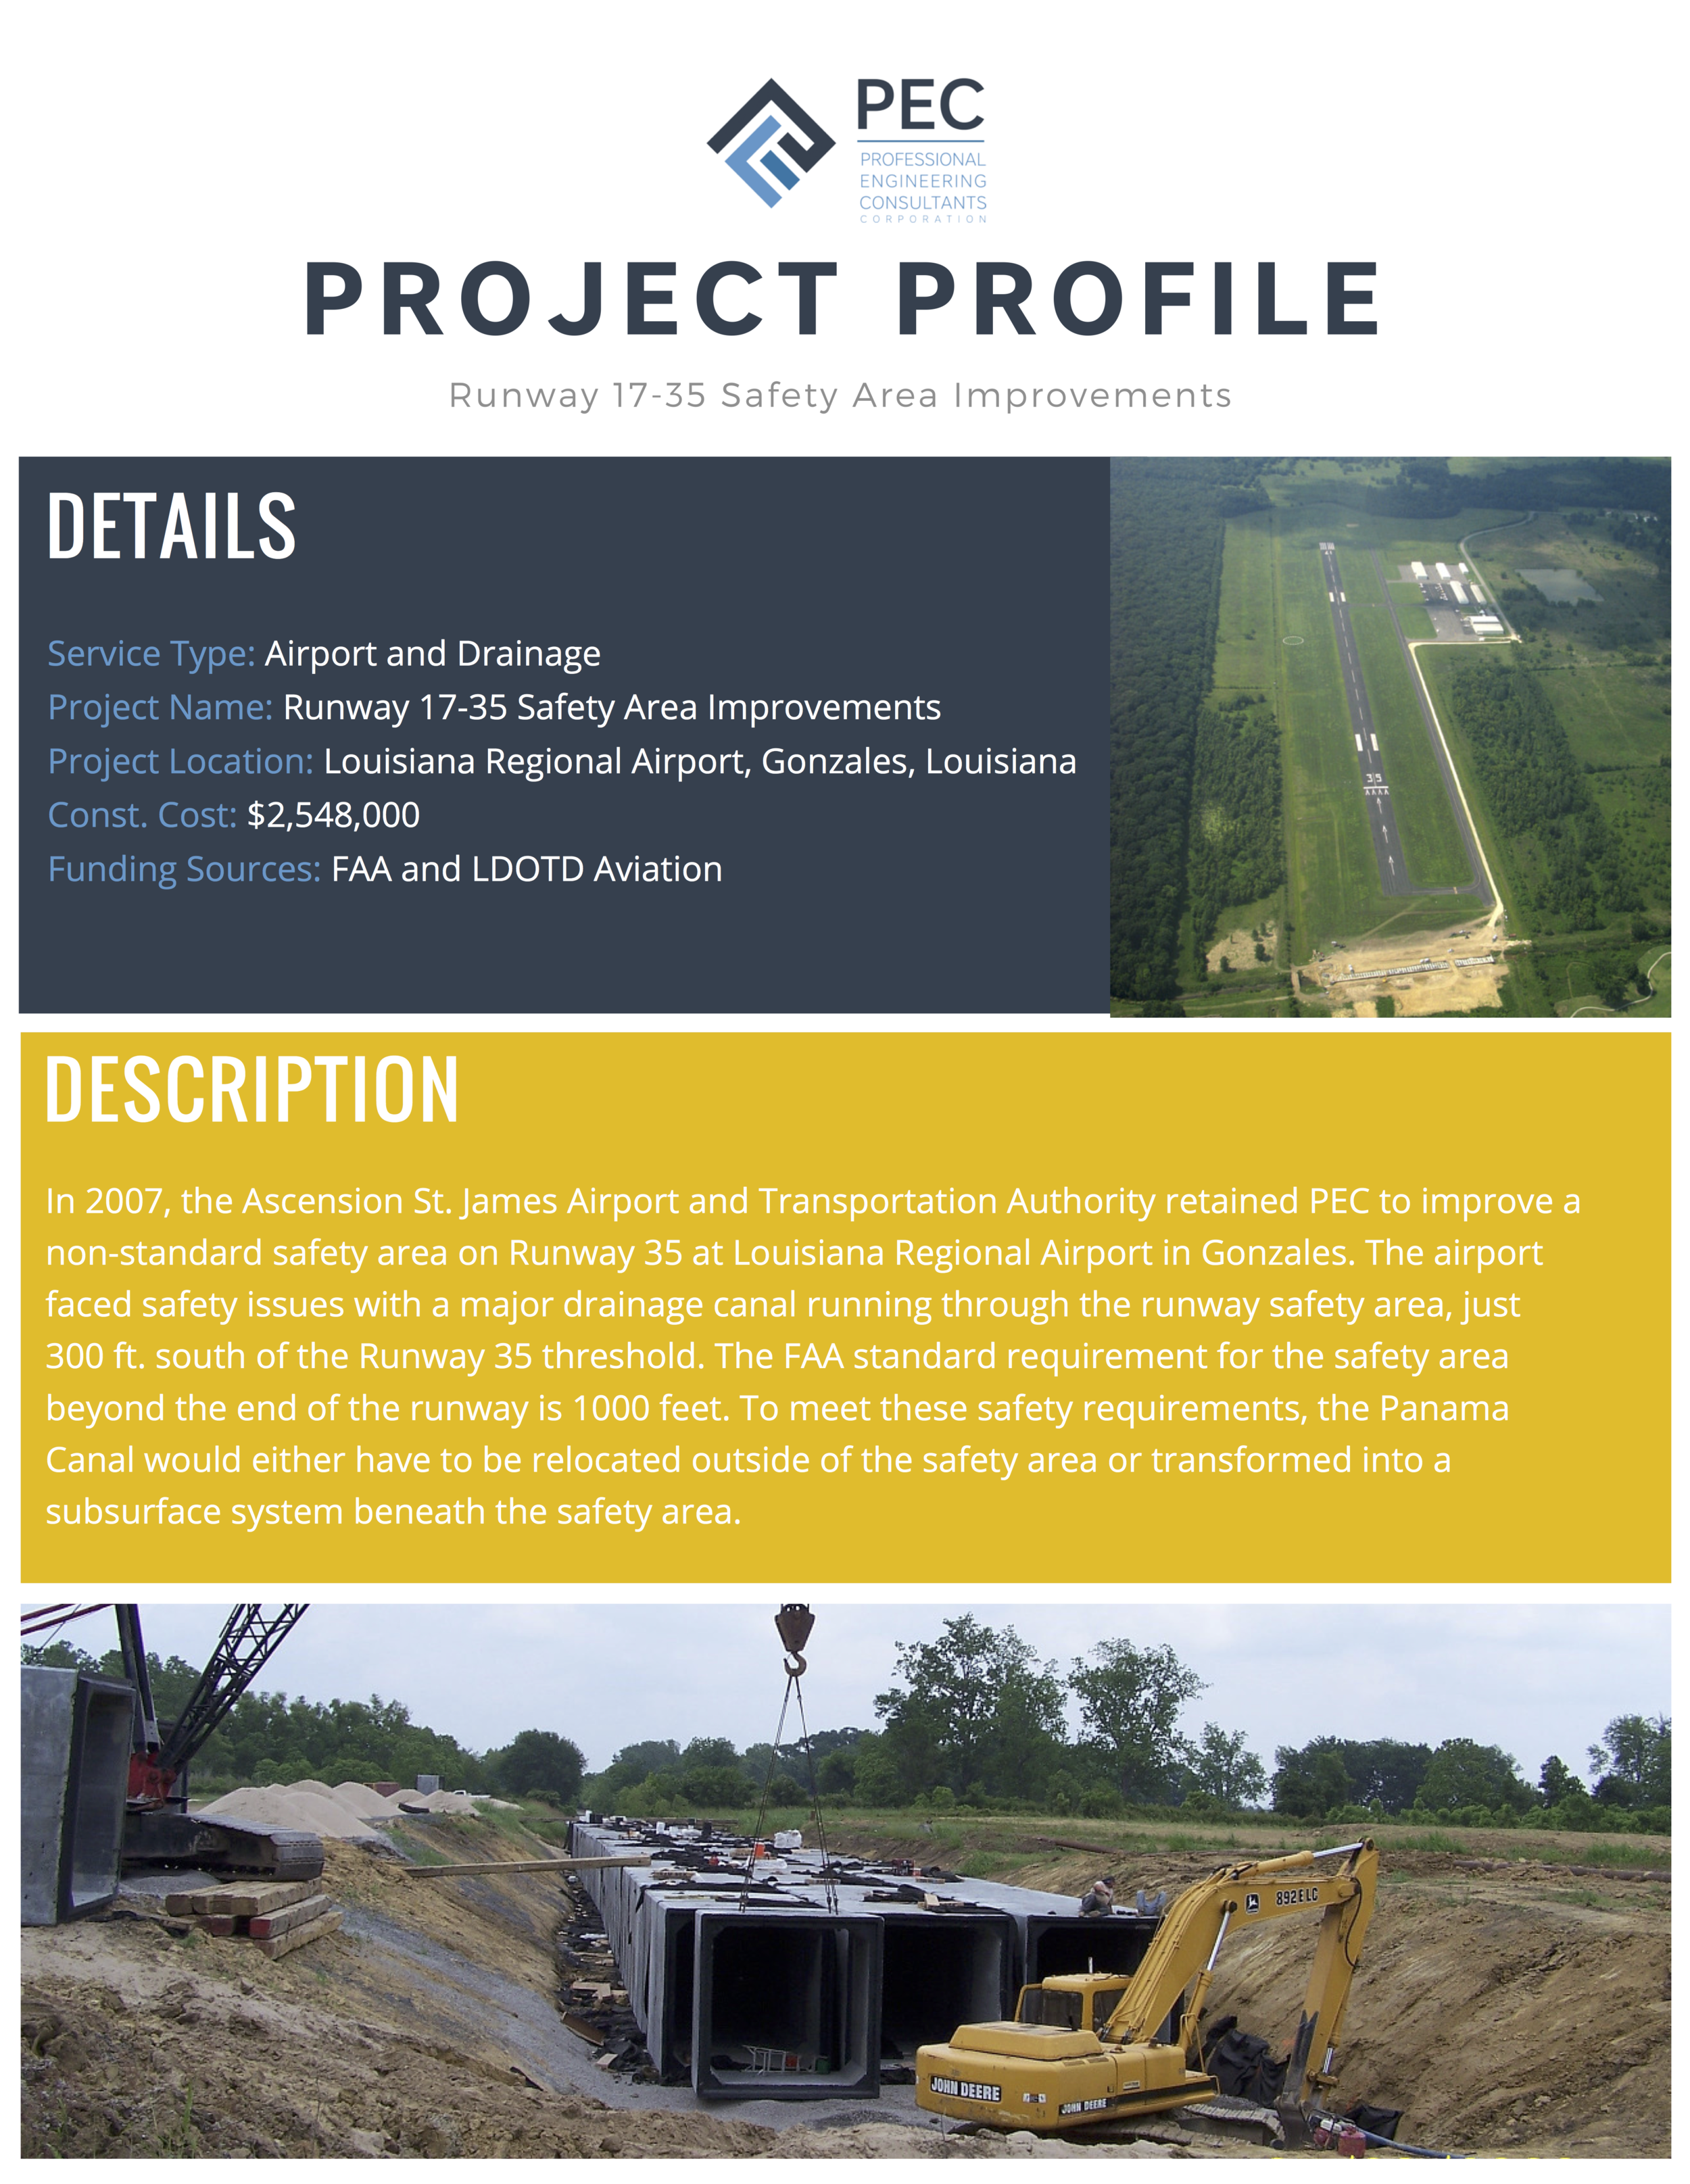 Project Profile_Runway 17-35 Safety Area ImprovementsFINAL.jpg